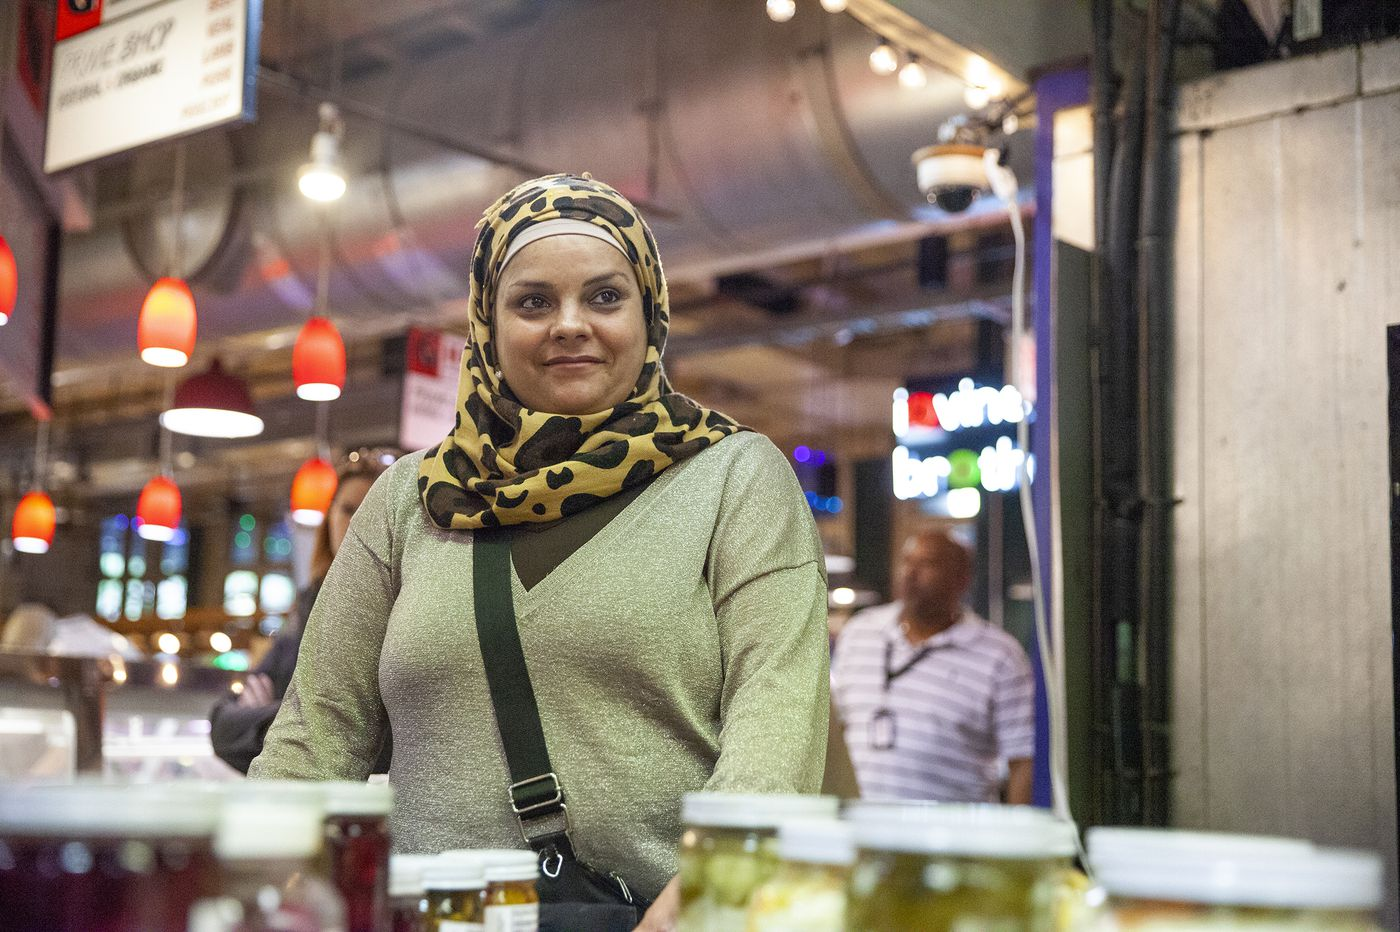 Refugee went from janitor to vendor at Reading Terminal Market in a year | We the People